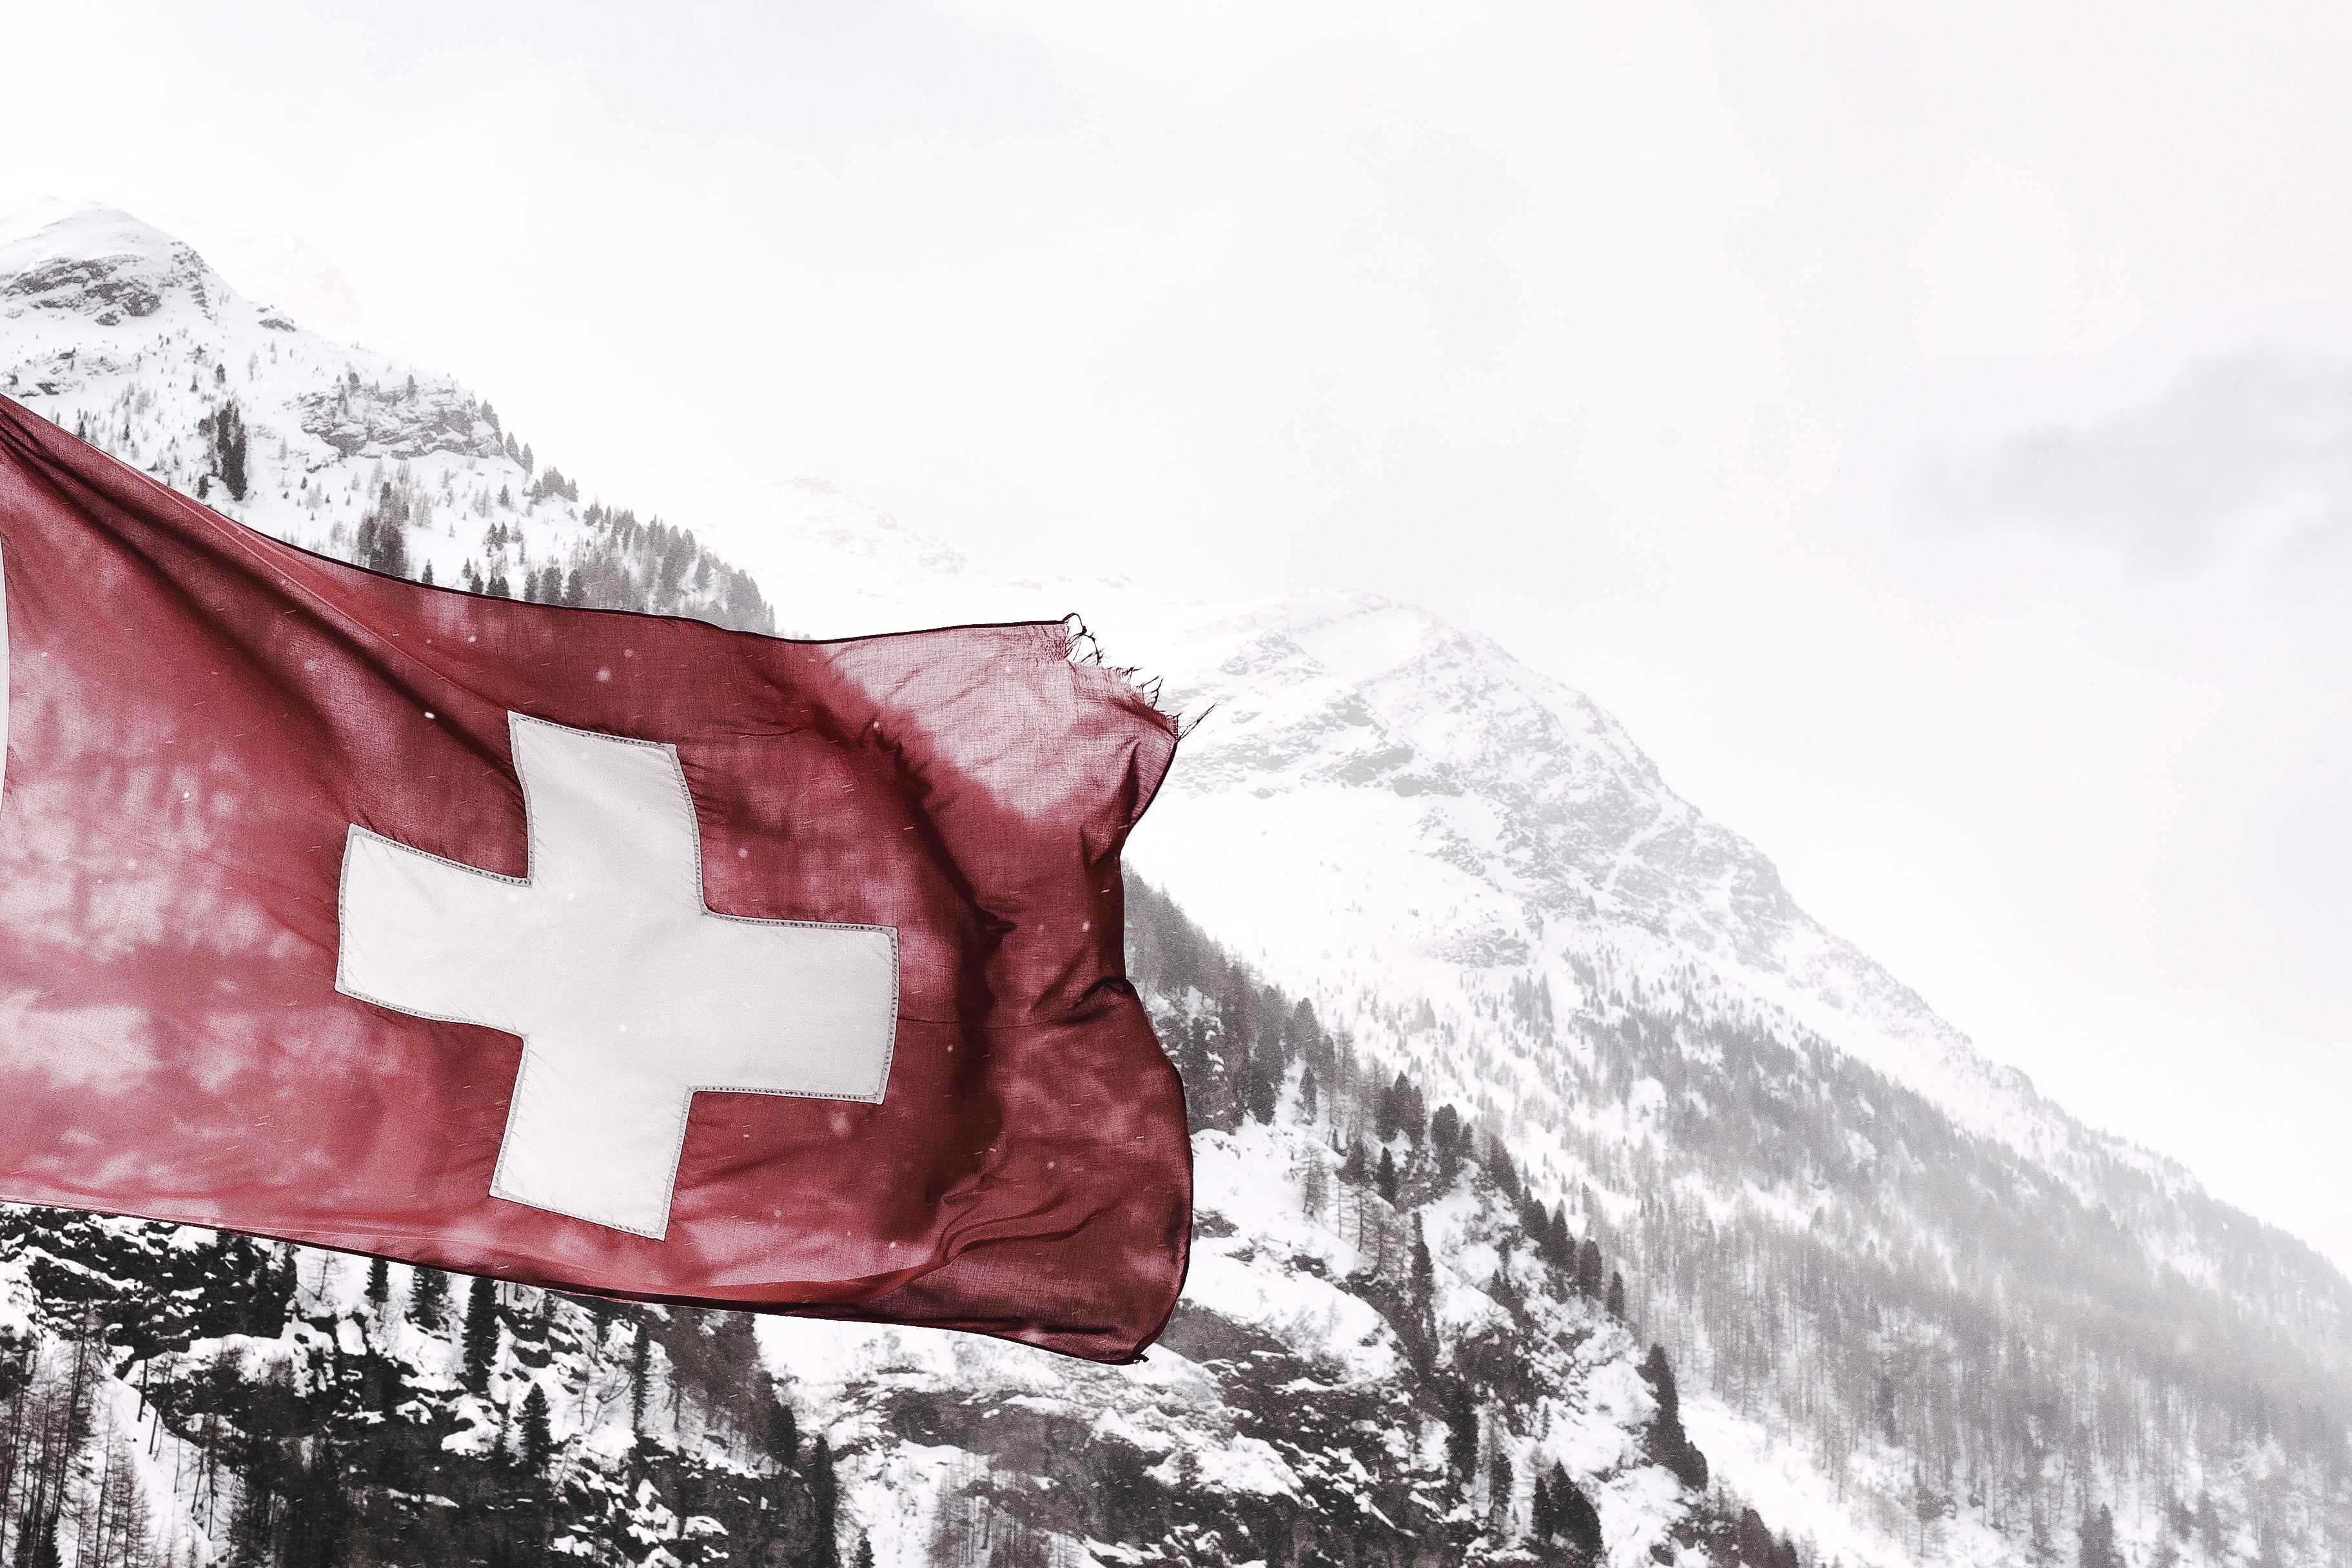 The Swiss flag flying with a mountain backdrop.